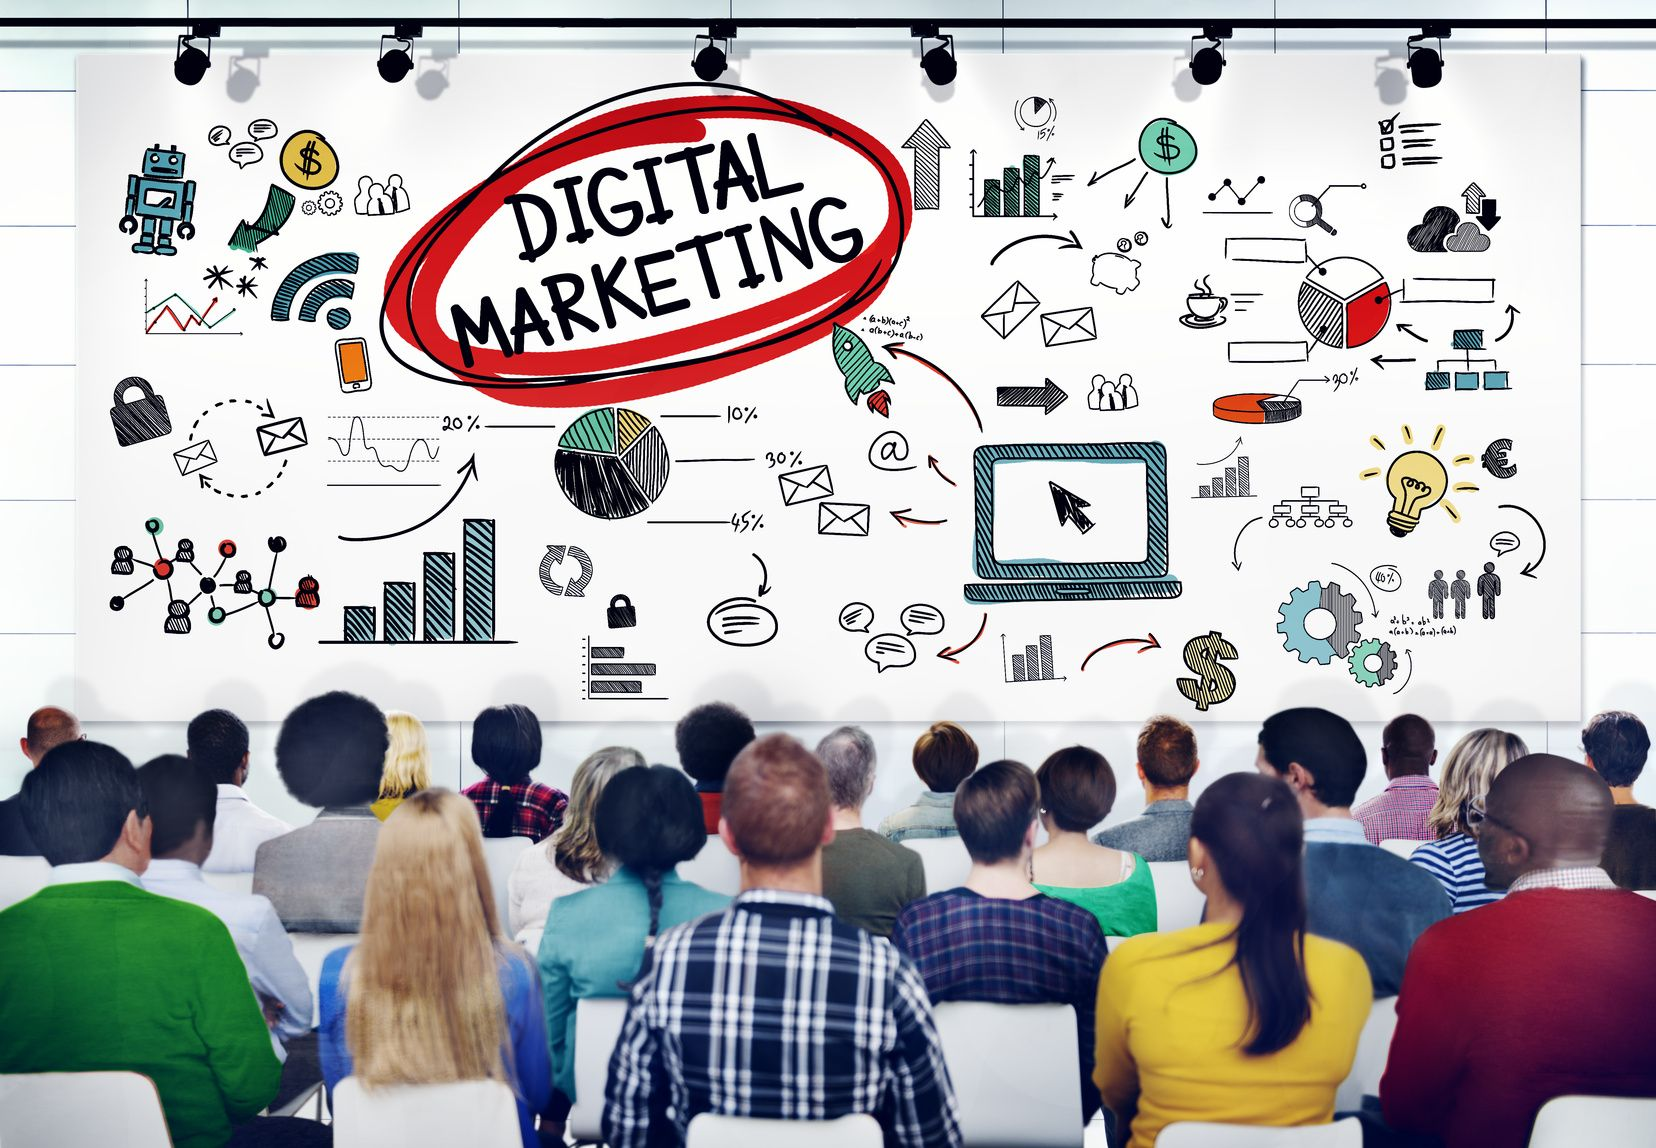 Forbes dibuja el panorama del marketing digital para 2015